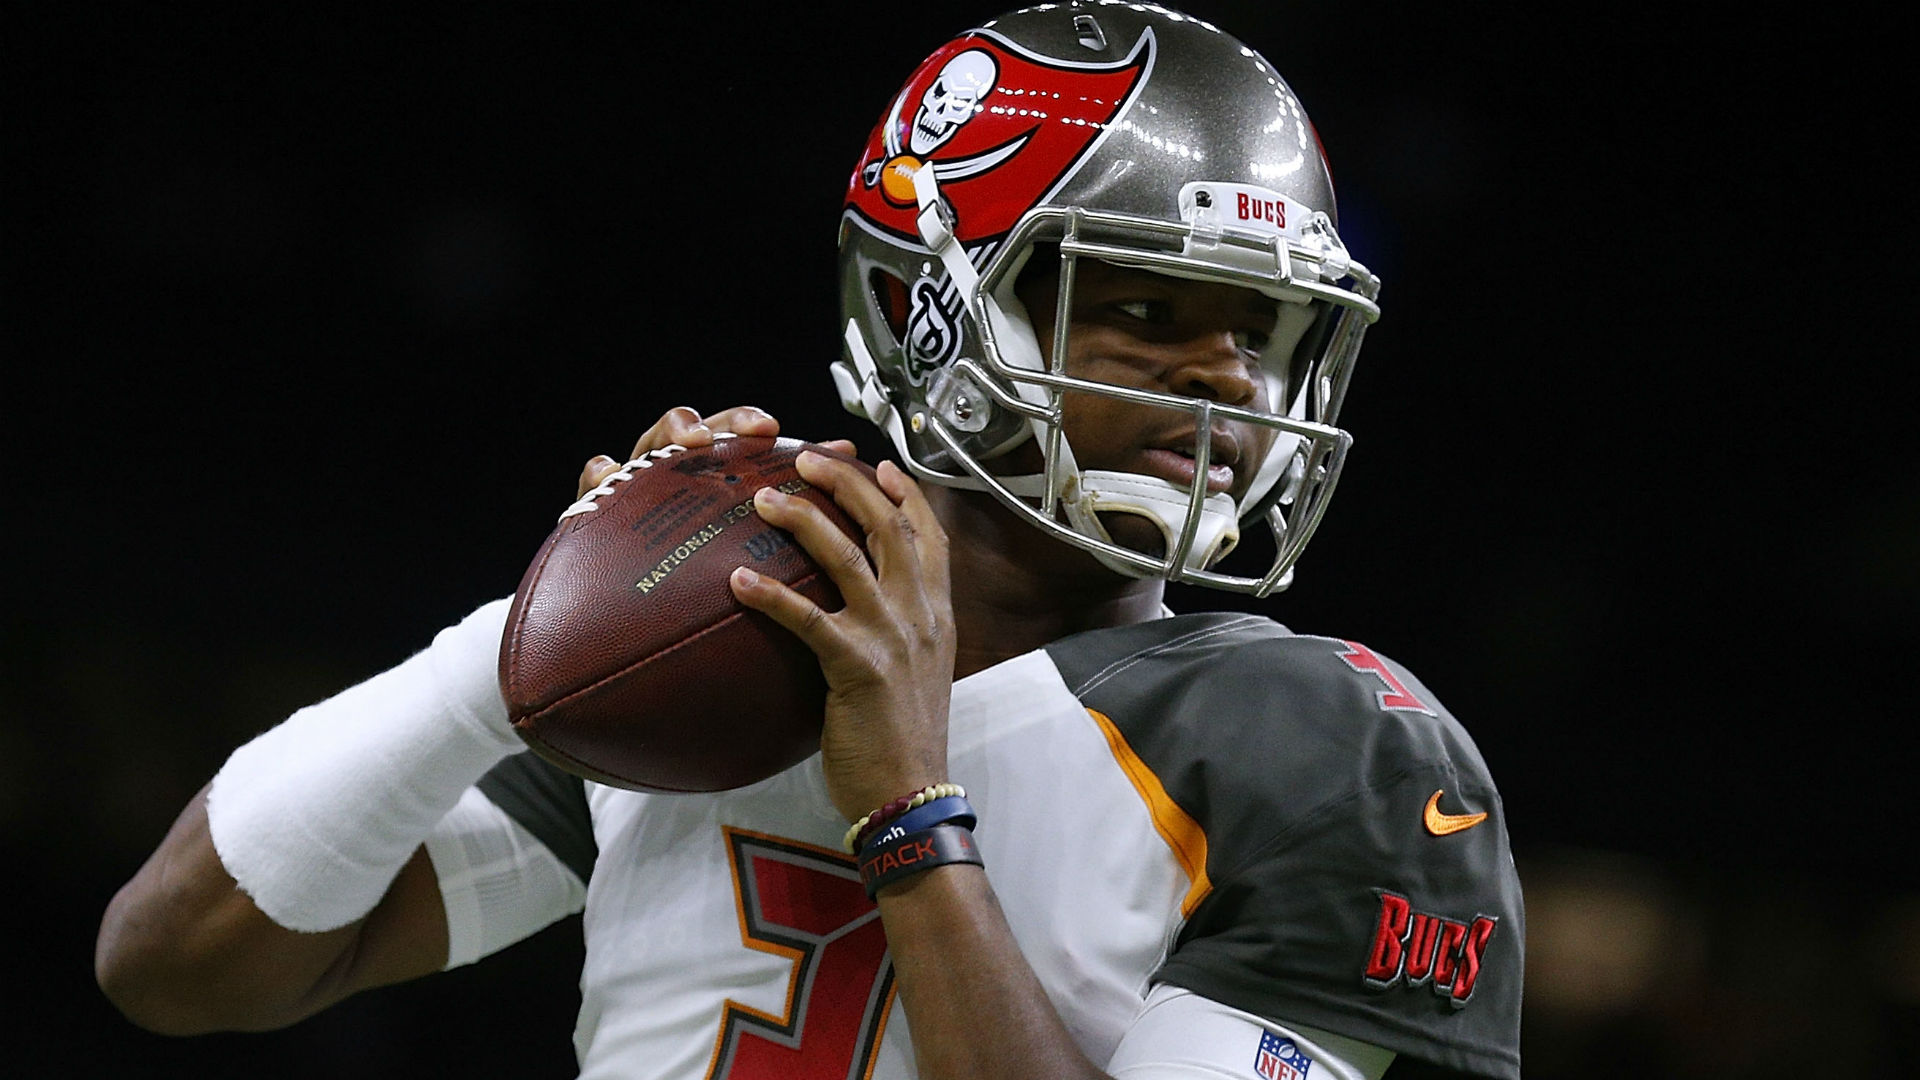 Jameis Winston push leads to brief skirmish on Bucs sideline